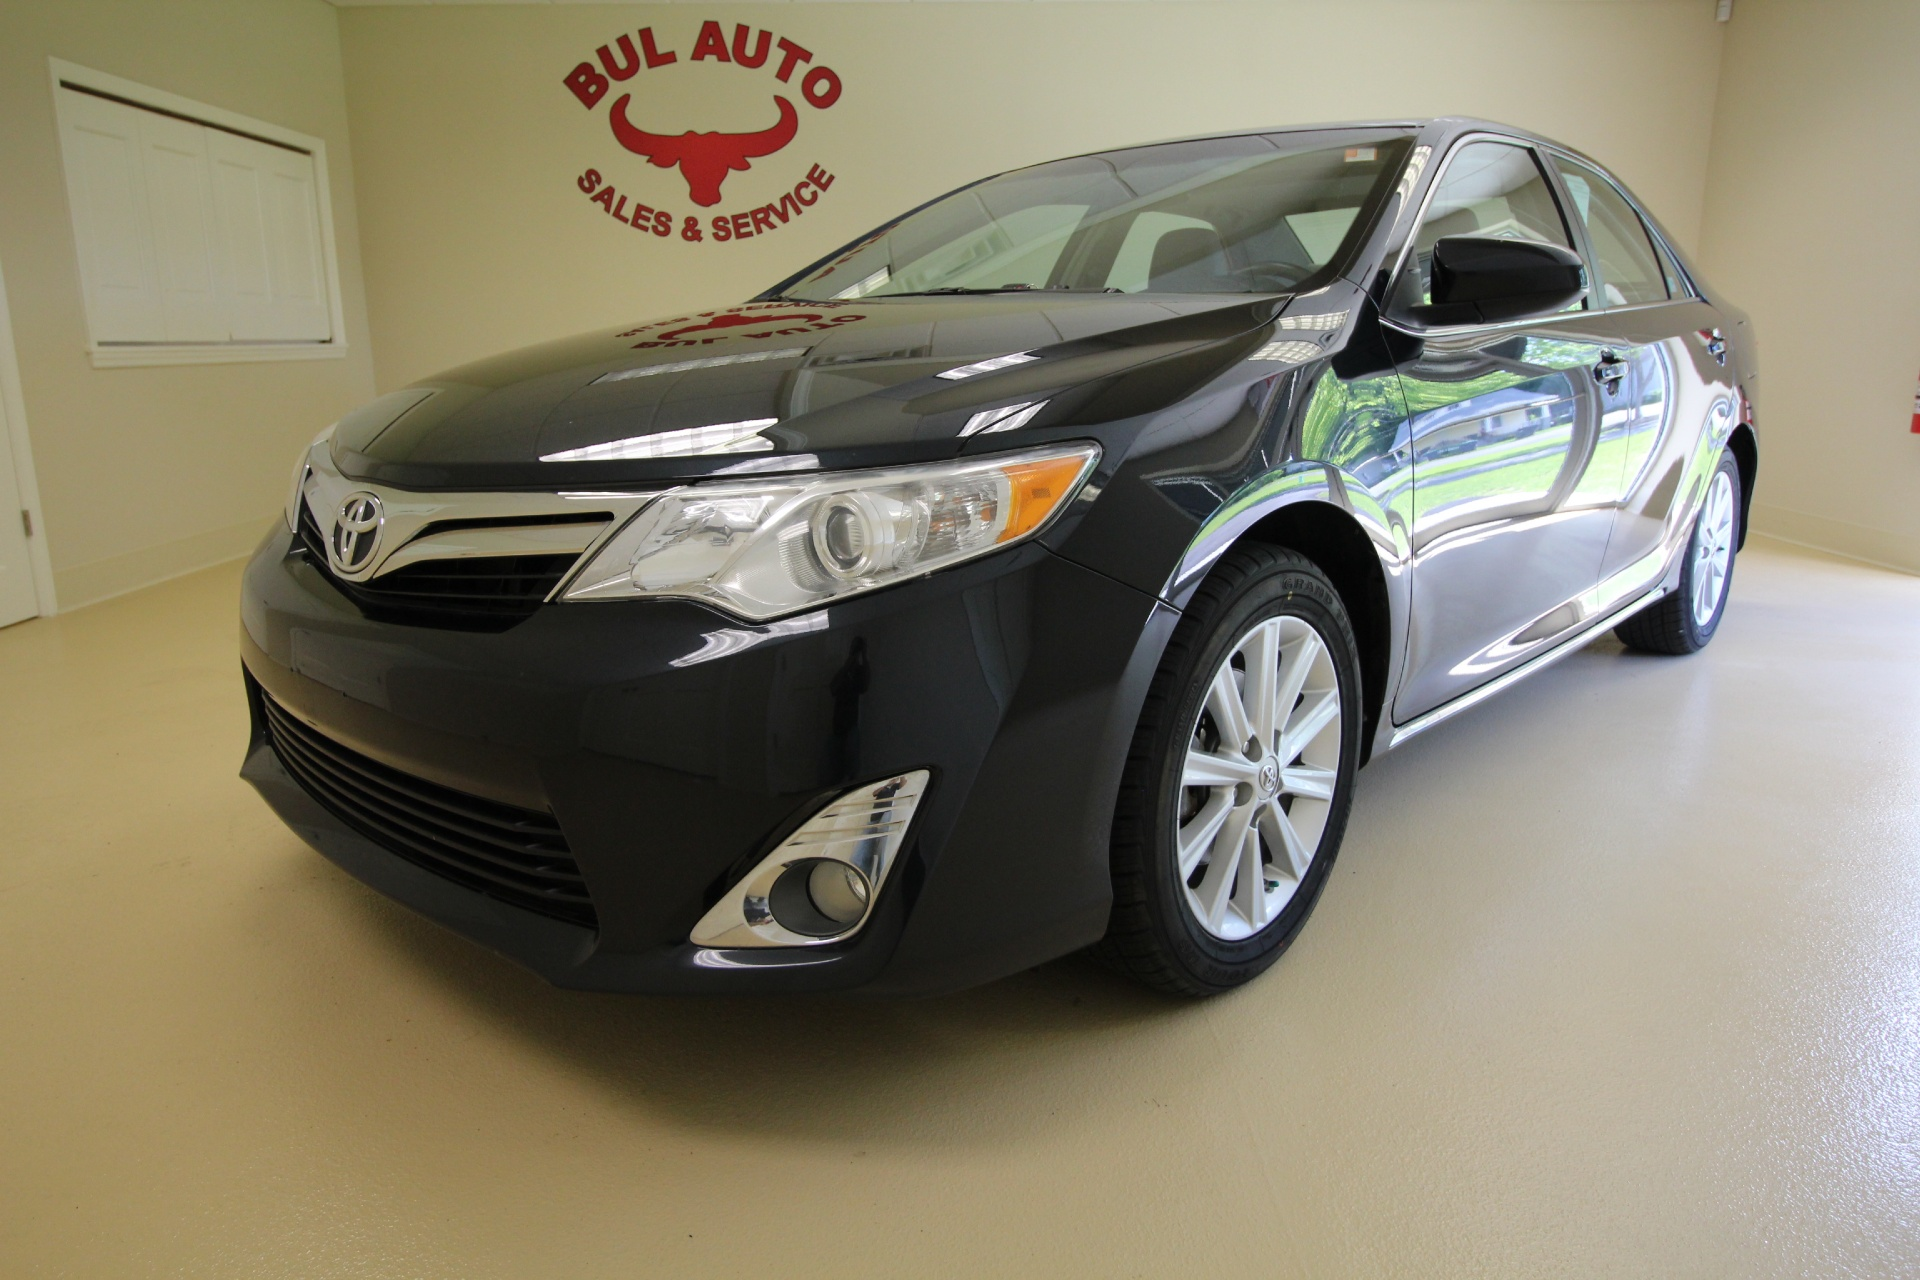 2012 toyota camry xle super clean back up camera leather sunroof heated seats stock 16124 for. Black Bedroom Furniture Sets. Home Design Ideas